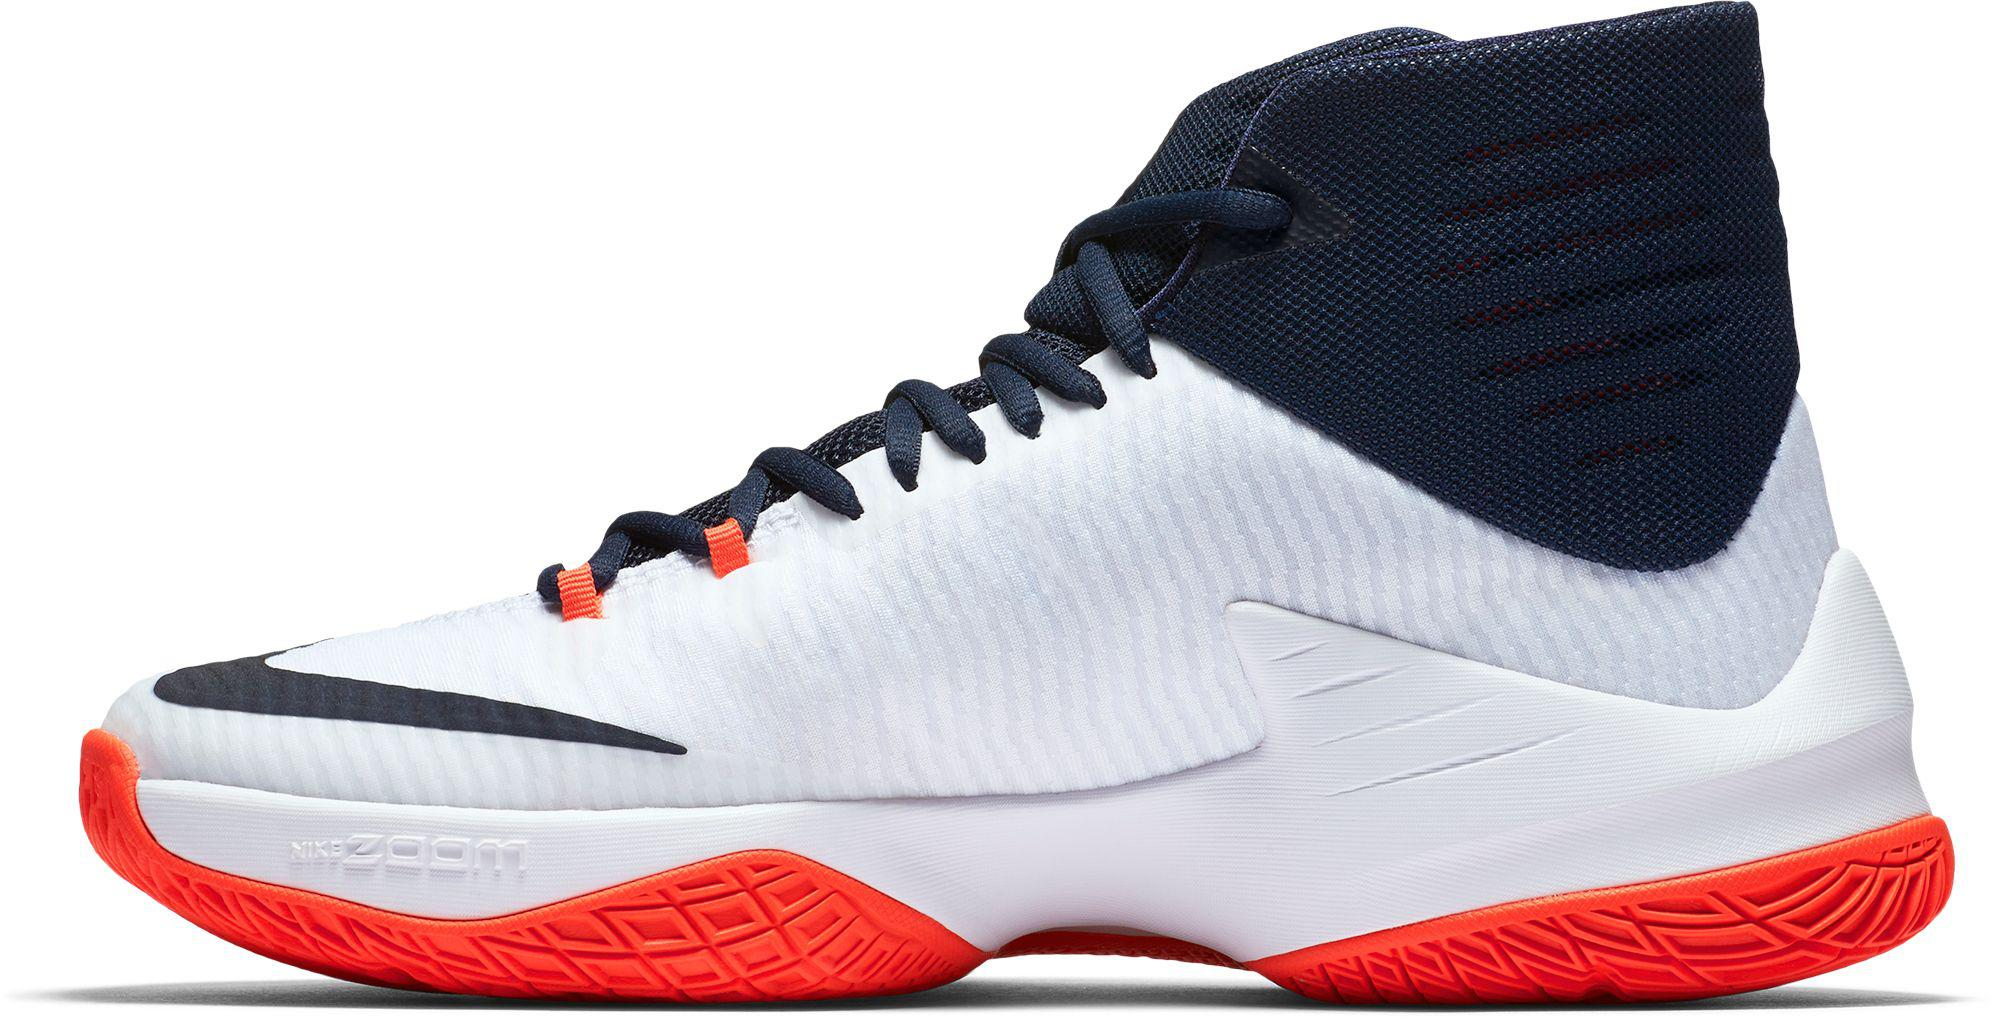 417873c571c3 nike-WhiteObsidian-Zoom-Clear-Out-Basketball-Shoes.jpeg